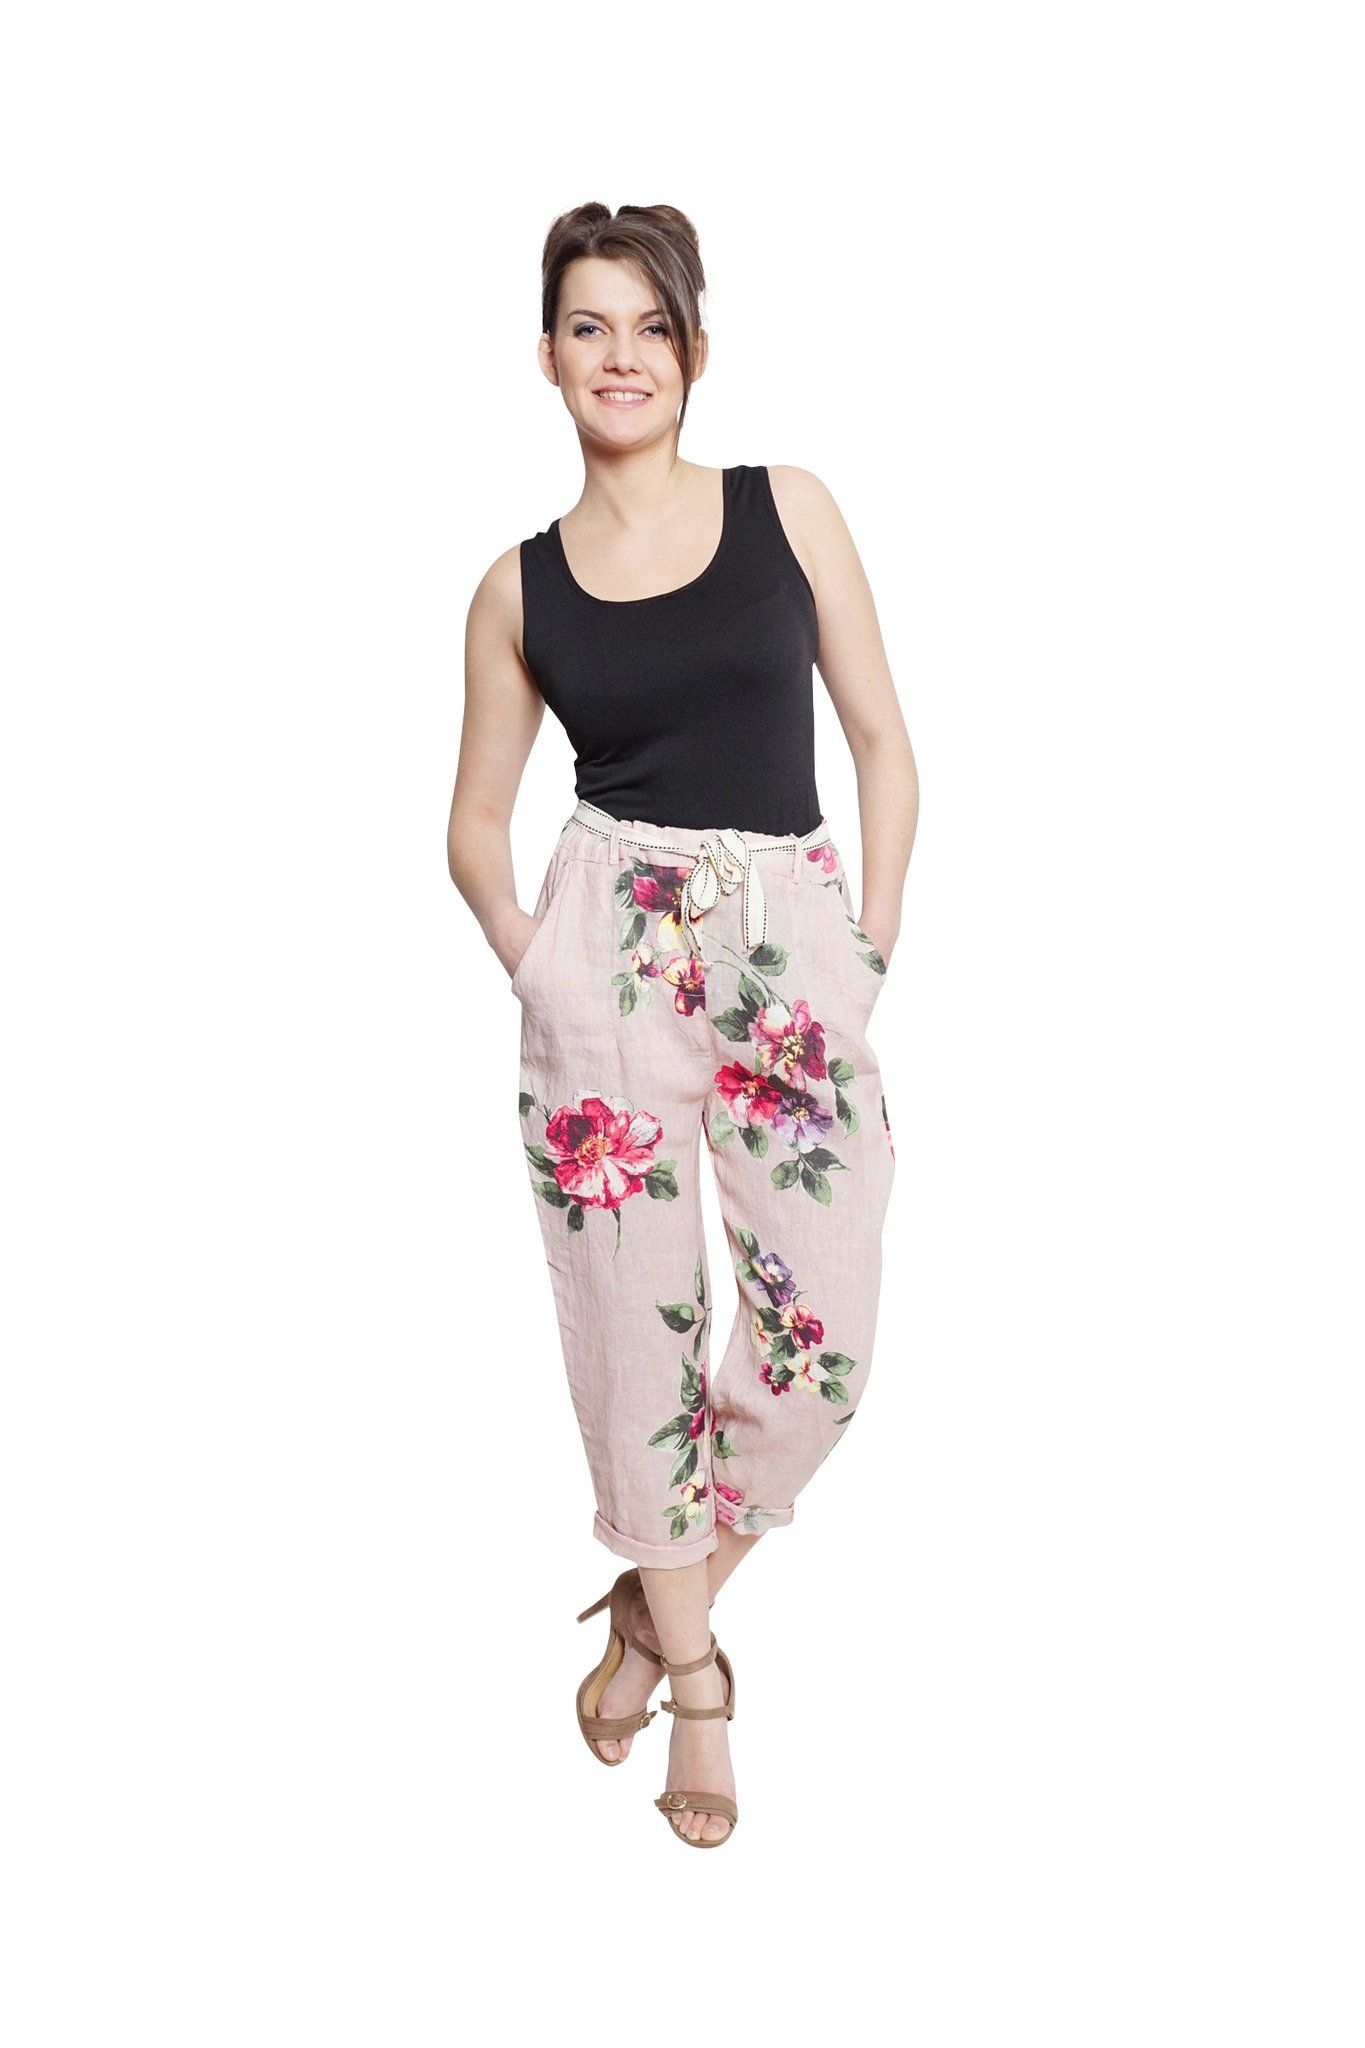 Bella Amore - Linen Floral Capris Italian Linen at All Things Being Eco Sustainable  Womens Fashion and Clothing 839264c71